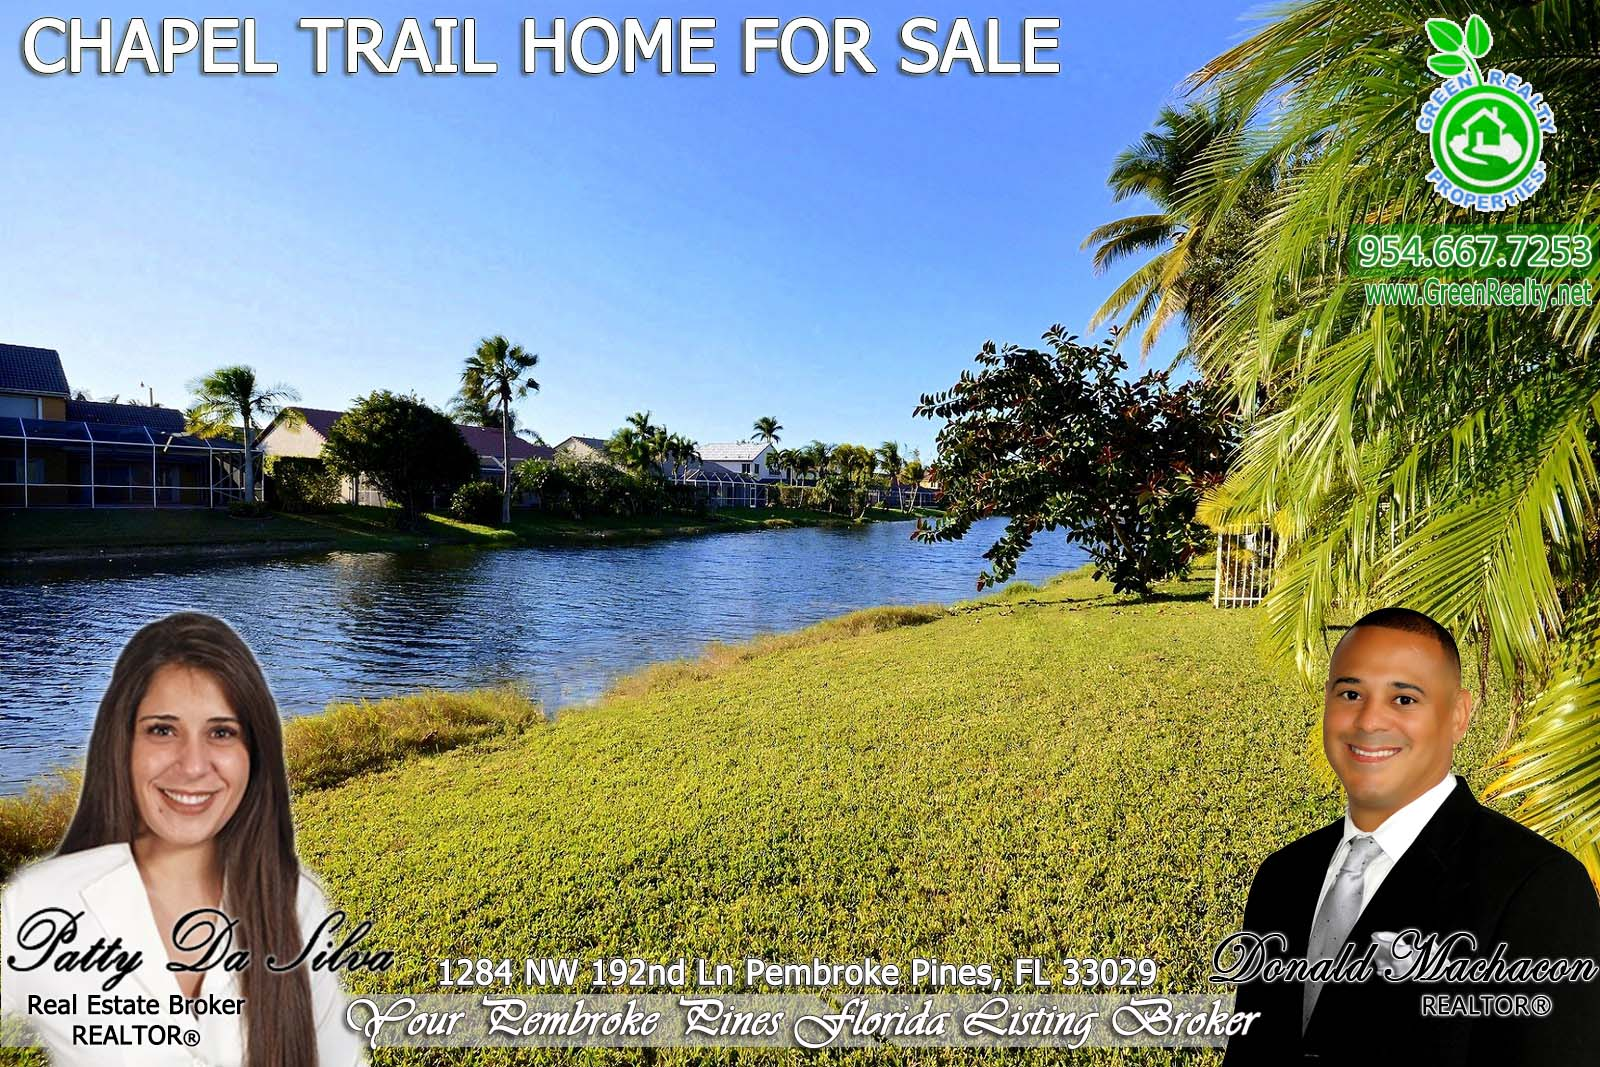 27 Homes For Sale in Pembroke Pines (7)